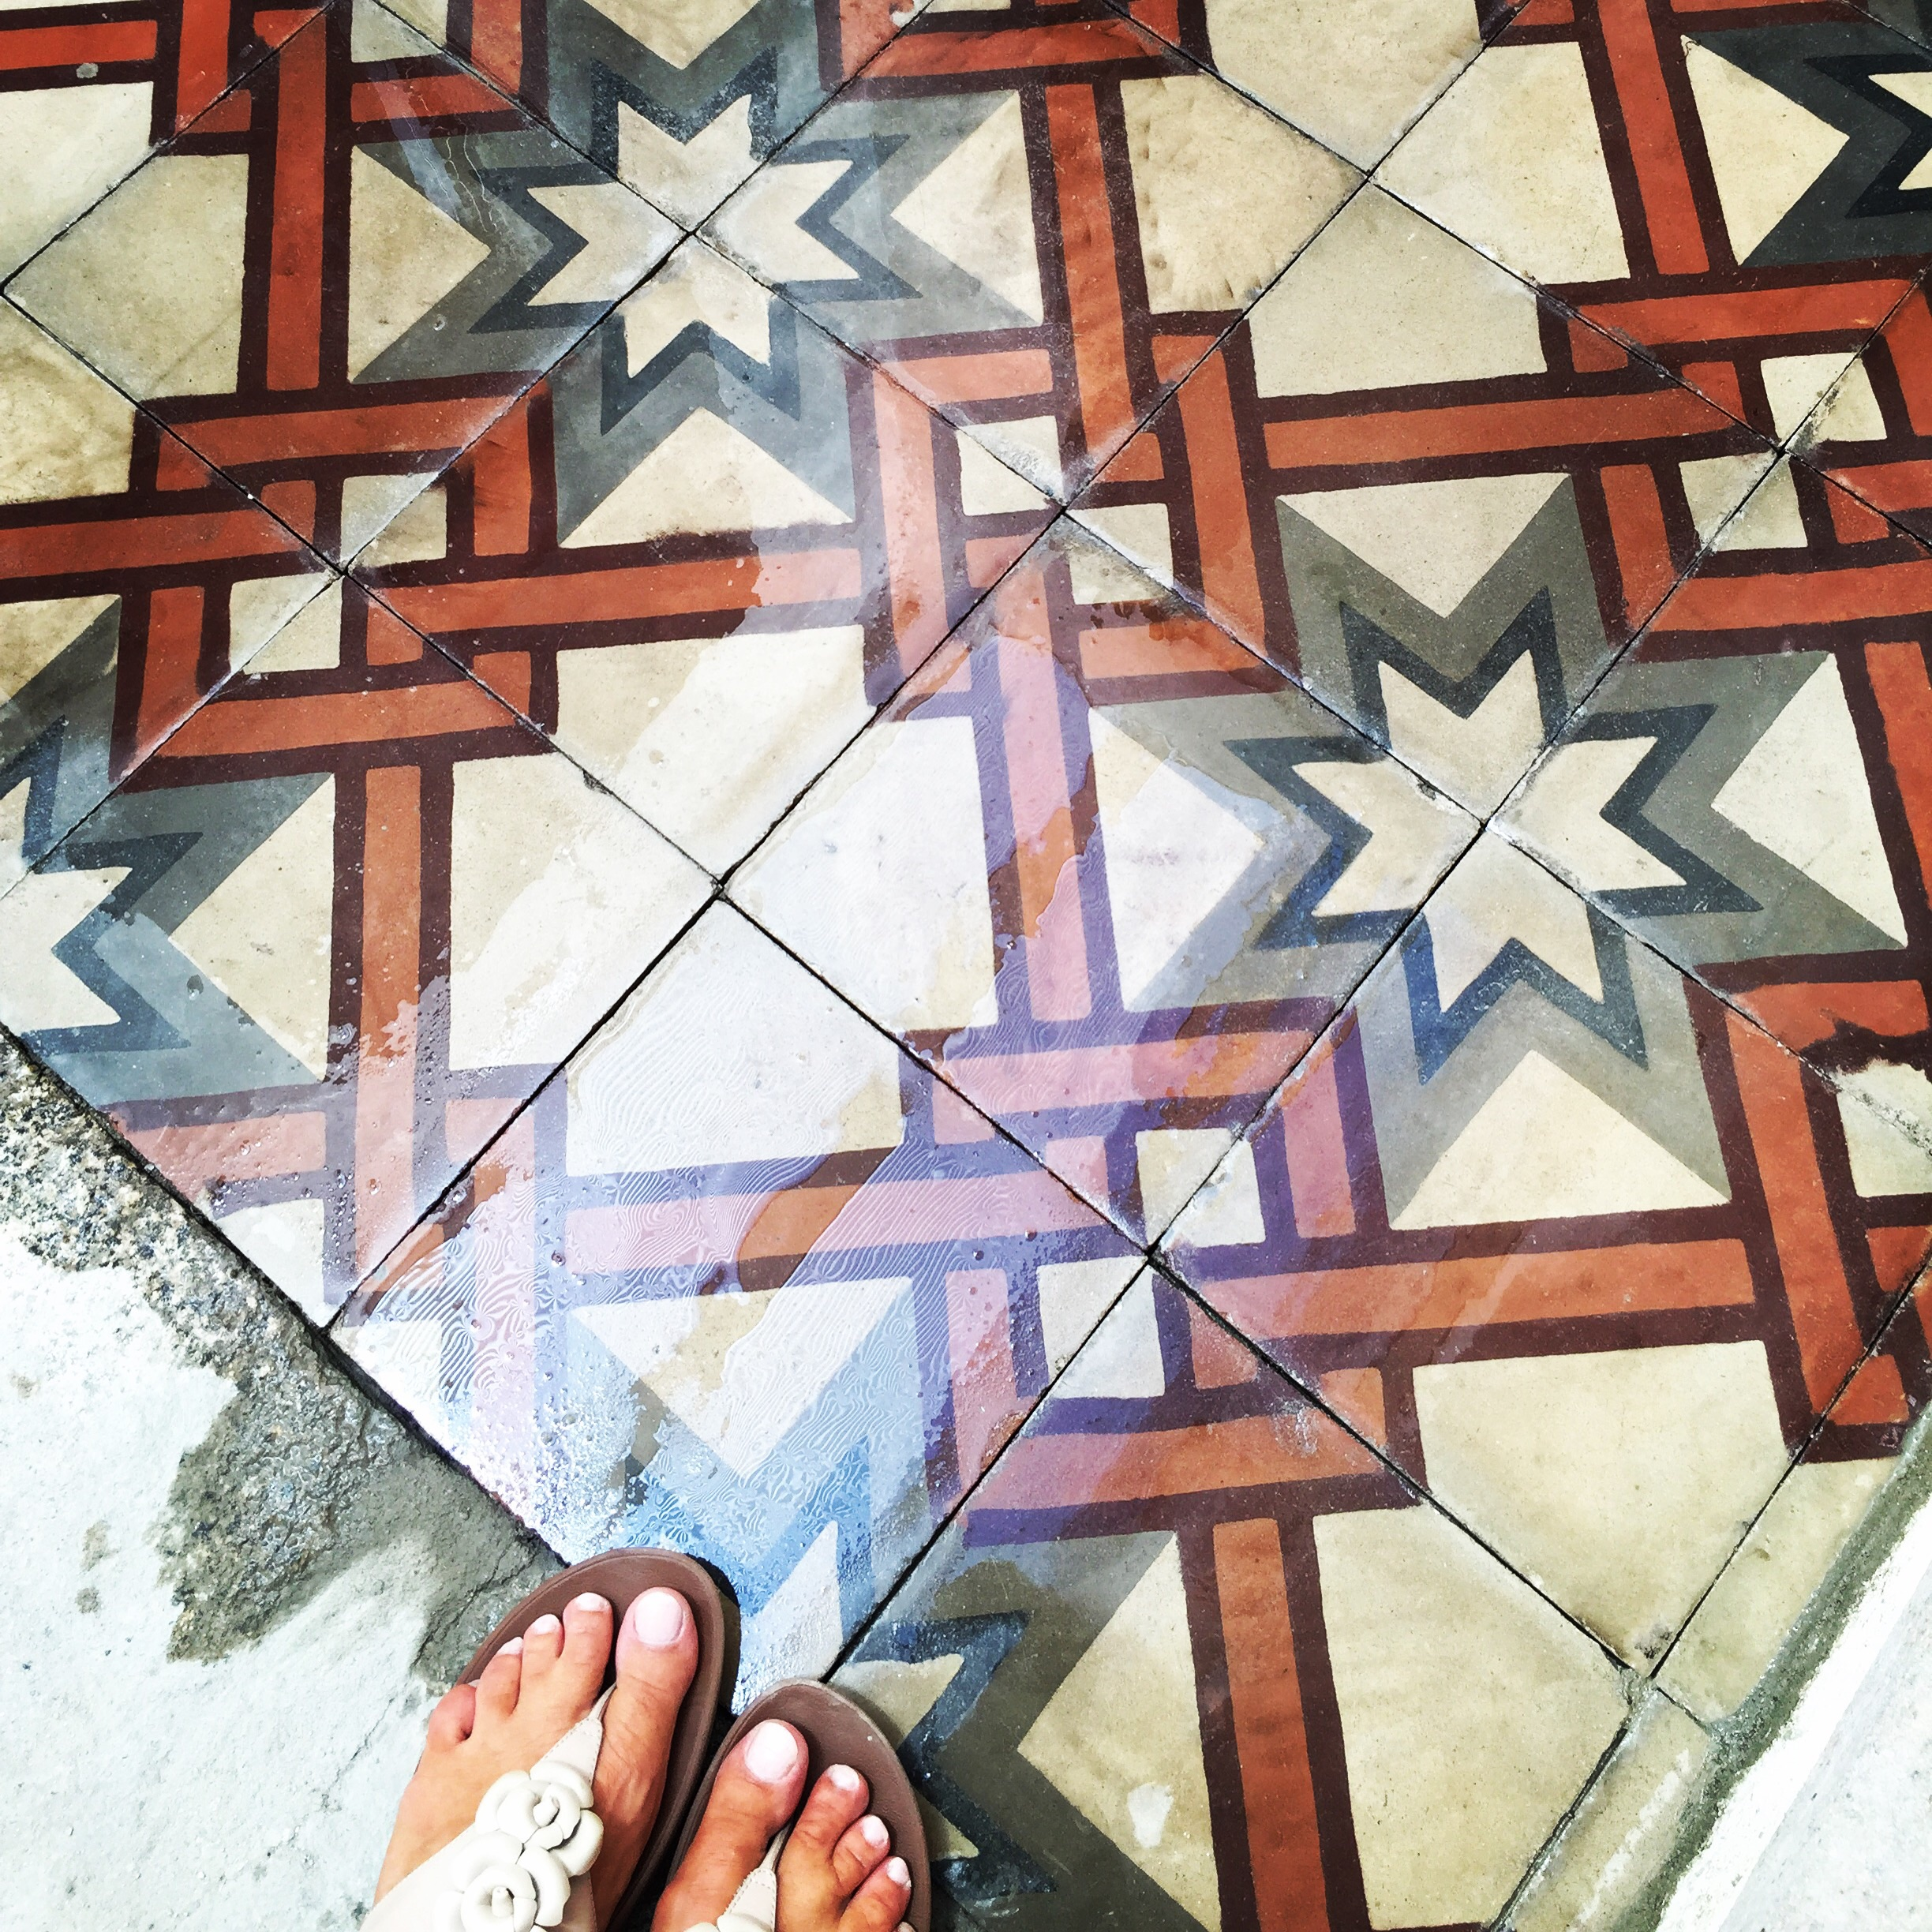 antique cement tiles from Pizzo found a new home in Pizzo!